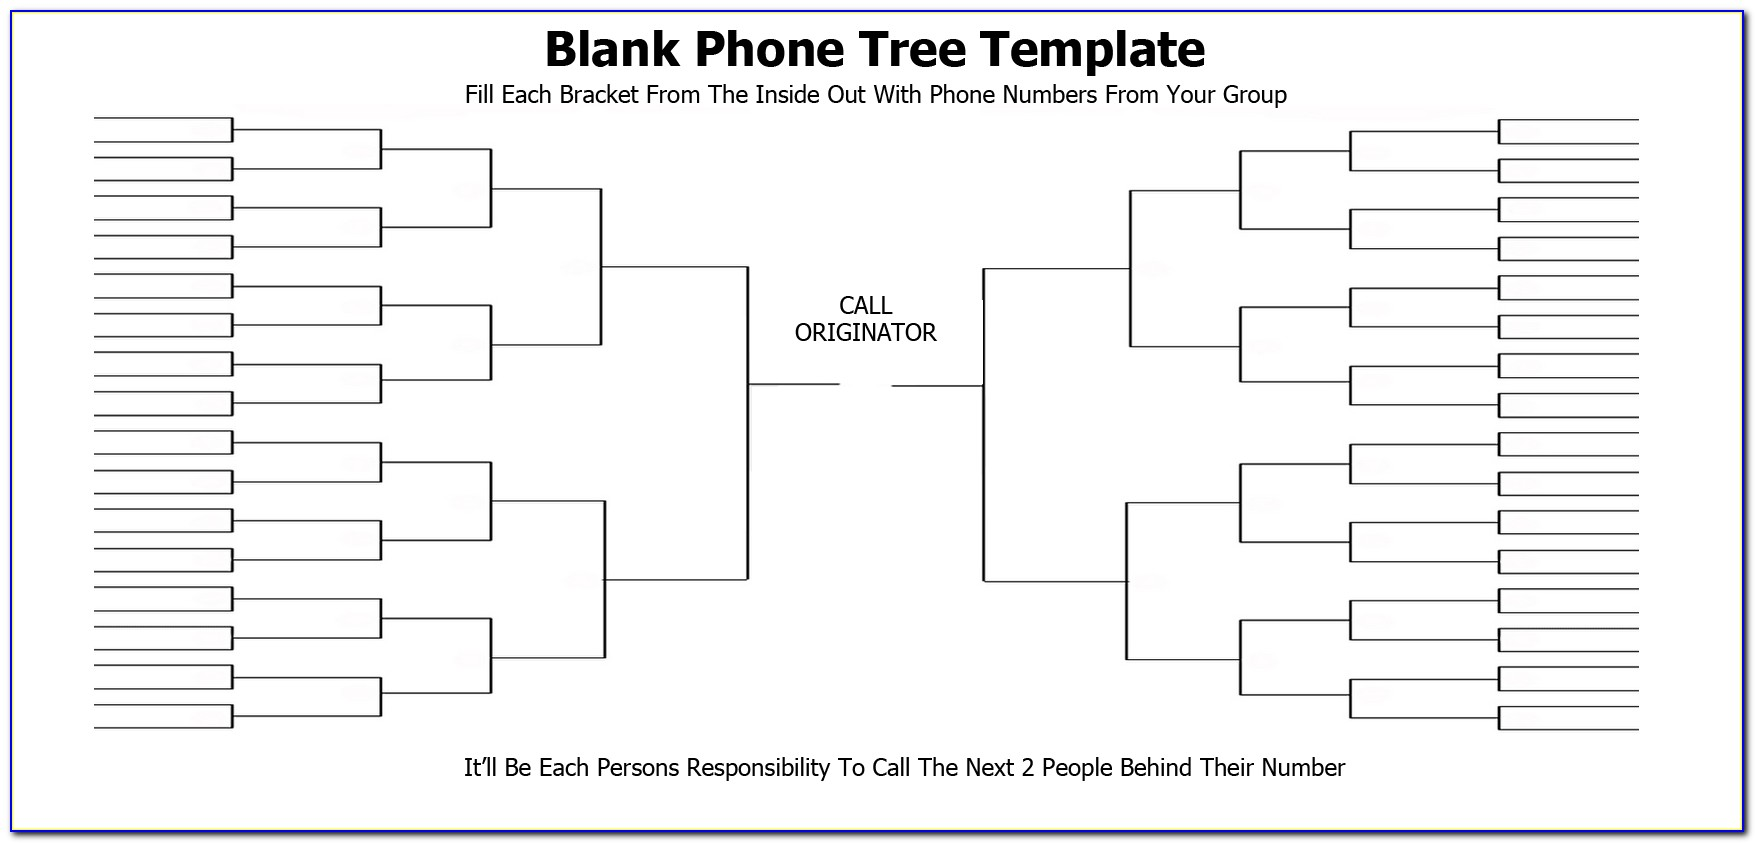 Free Phone Tree Template Word